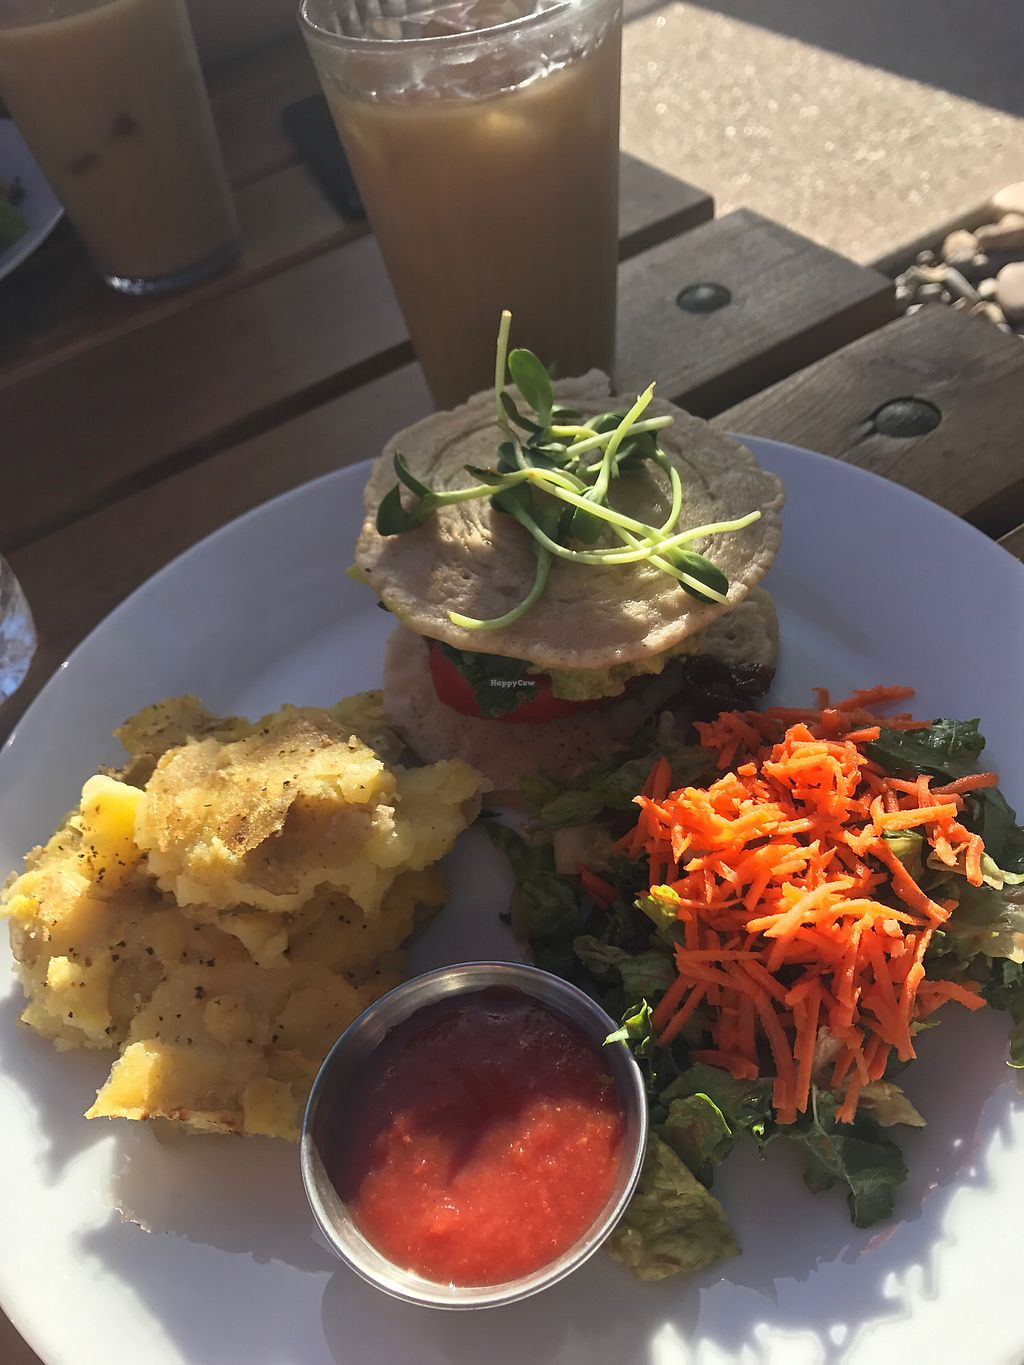 """Photo of The Uprooted Kitchen  by <a href=""""/members/profile/peggyp"""">peggyp</a> <br/>Tempeh Breakfast Sandwich & Cold Brew Coffee <br/> October 22, 2017  - <a href='/contact/abuse/image/31151/317713'>Report</a>"""